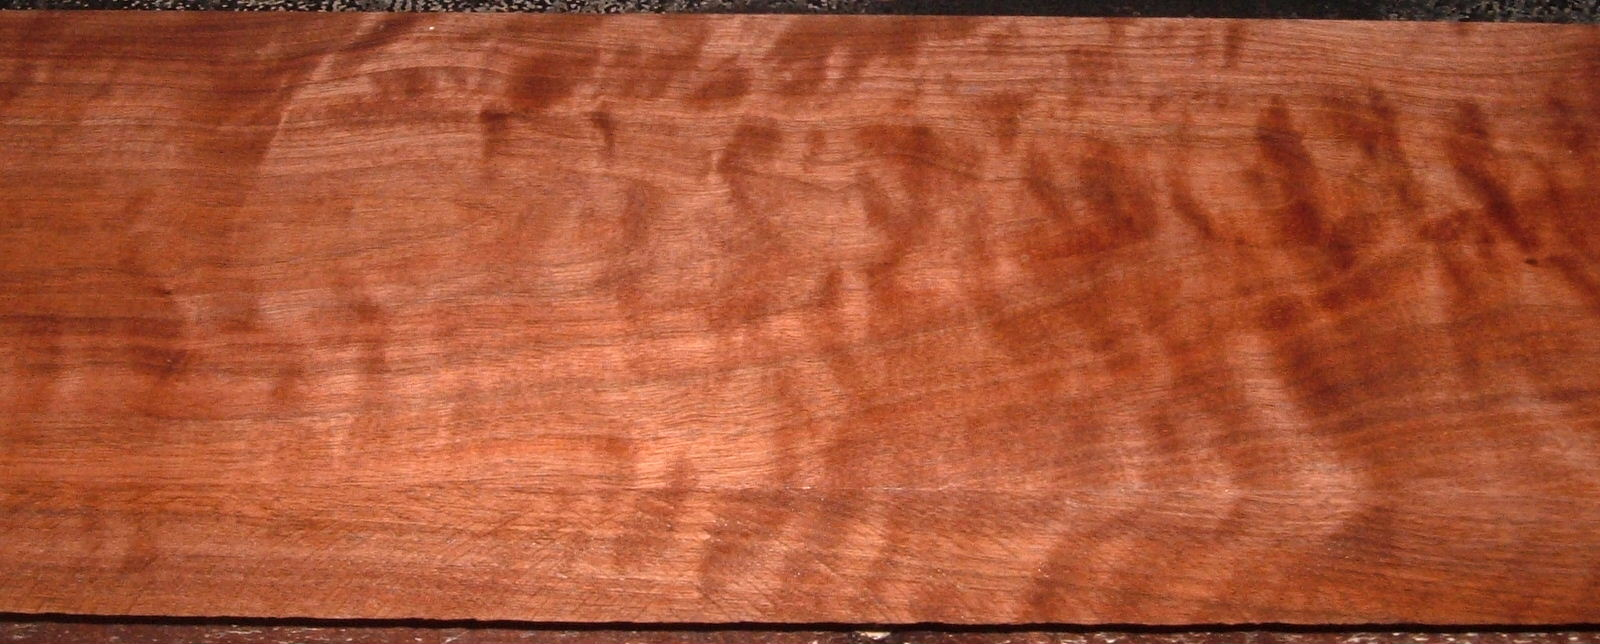 BW2101-27, 1-7/8x7-1/2x59, Curly Figured Black Walnut, Gun stock Blank